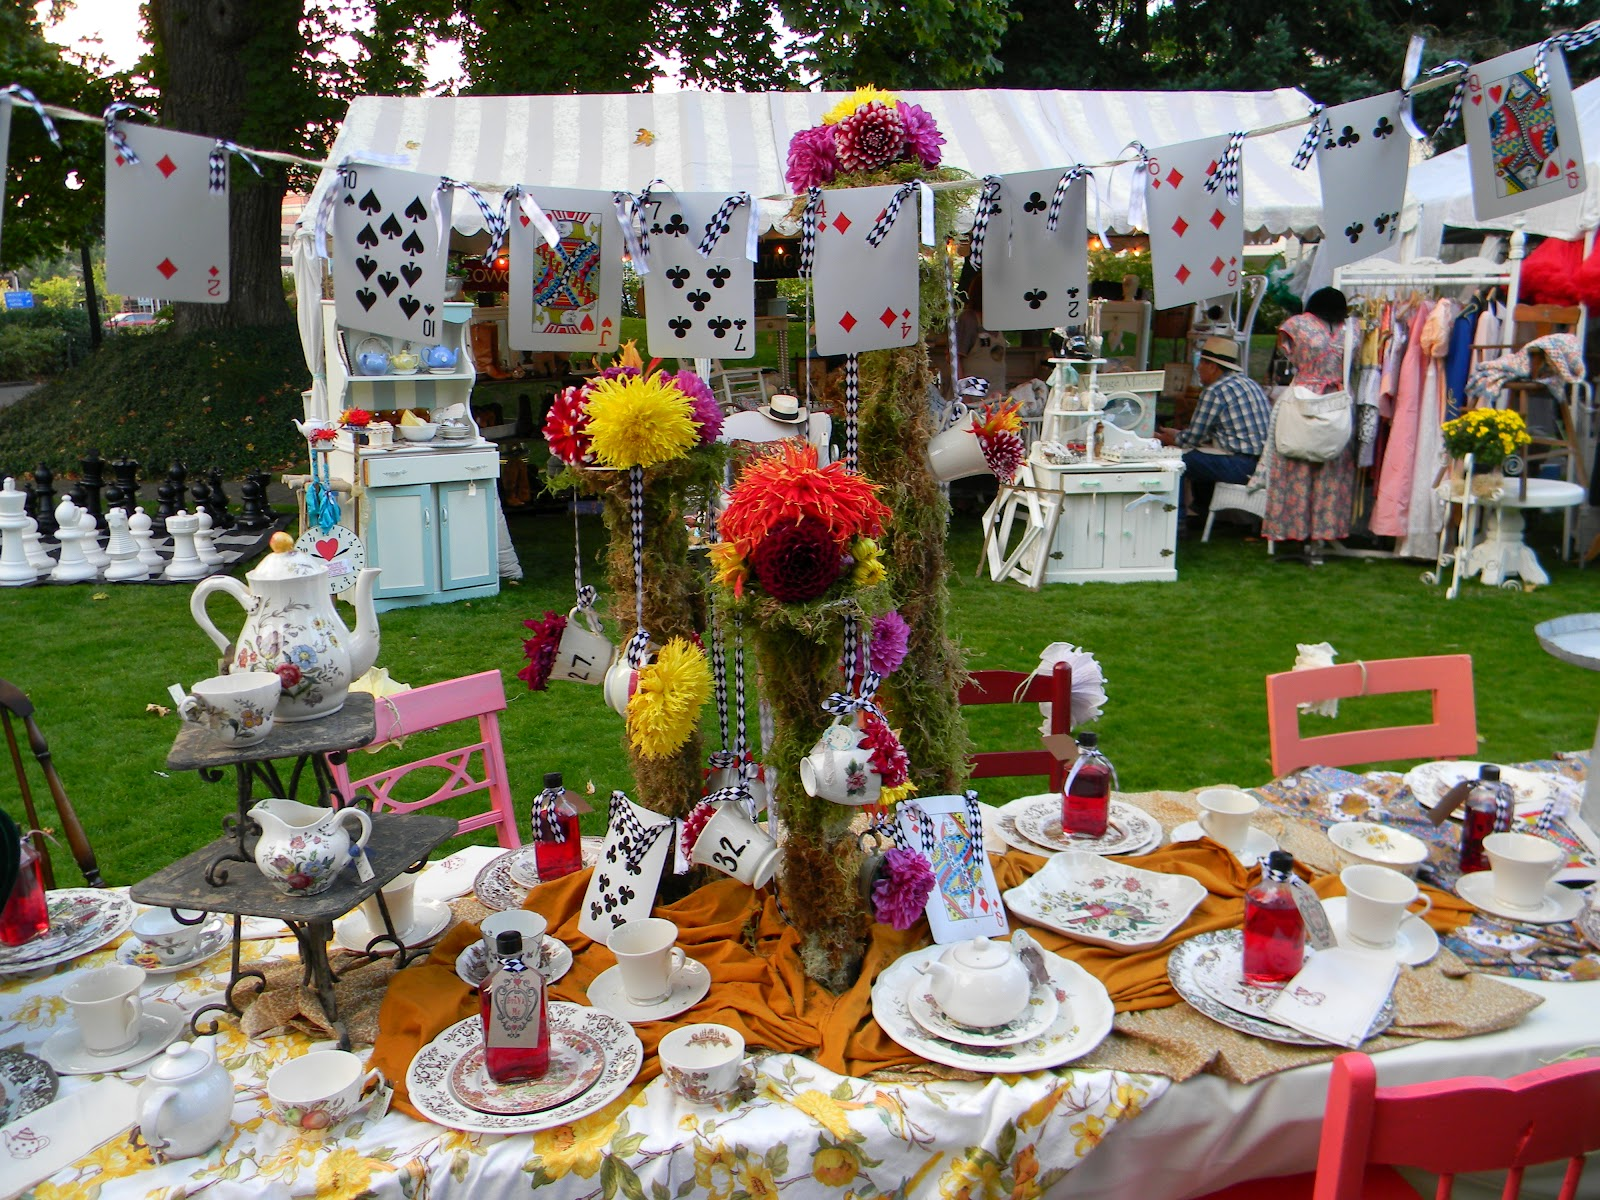 mad tea party - photo #2